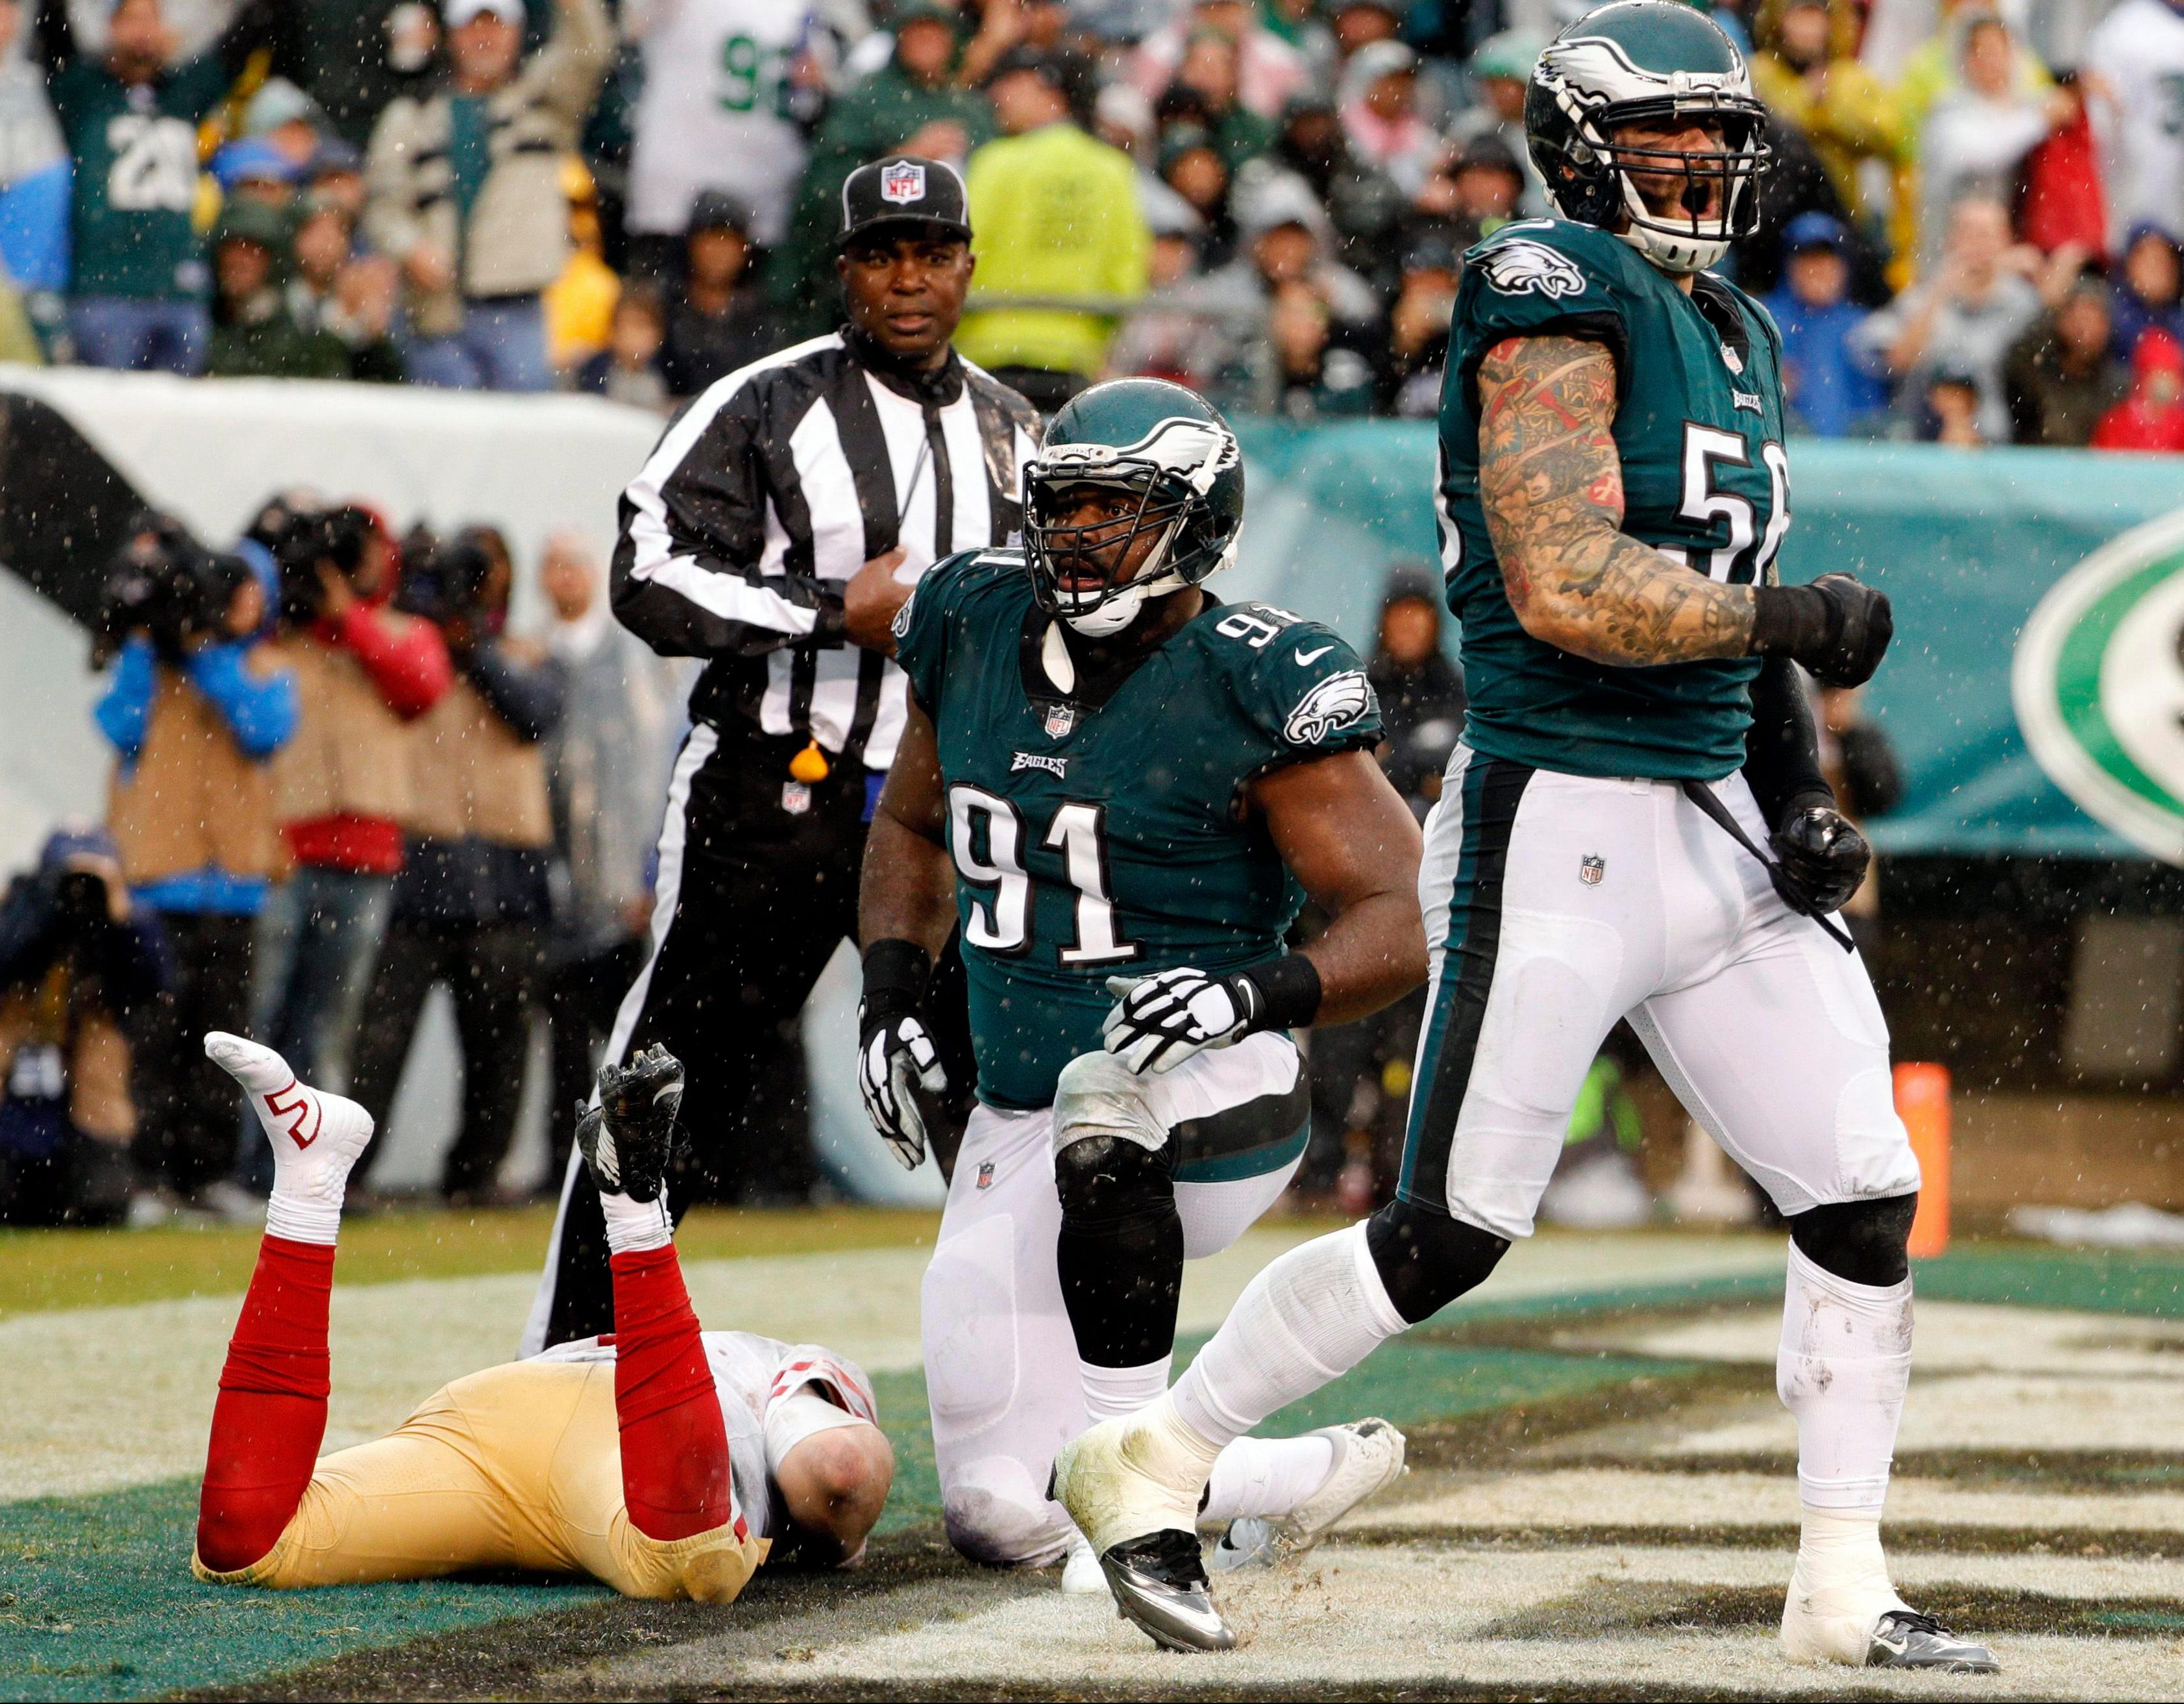 Chris Long is targeting more Super Bowl glory - this time with Philadelphia Eagles